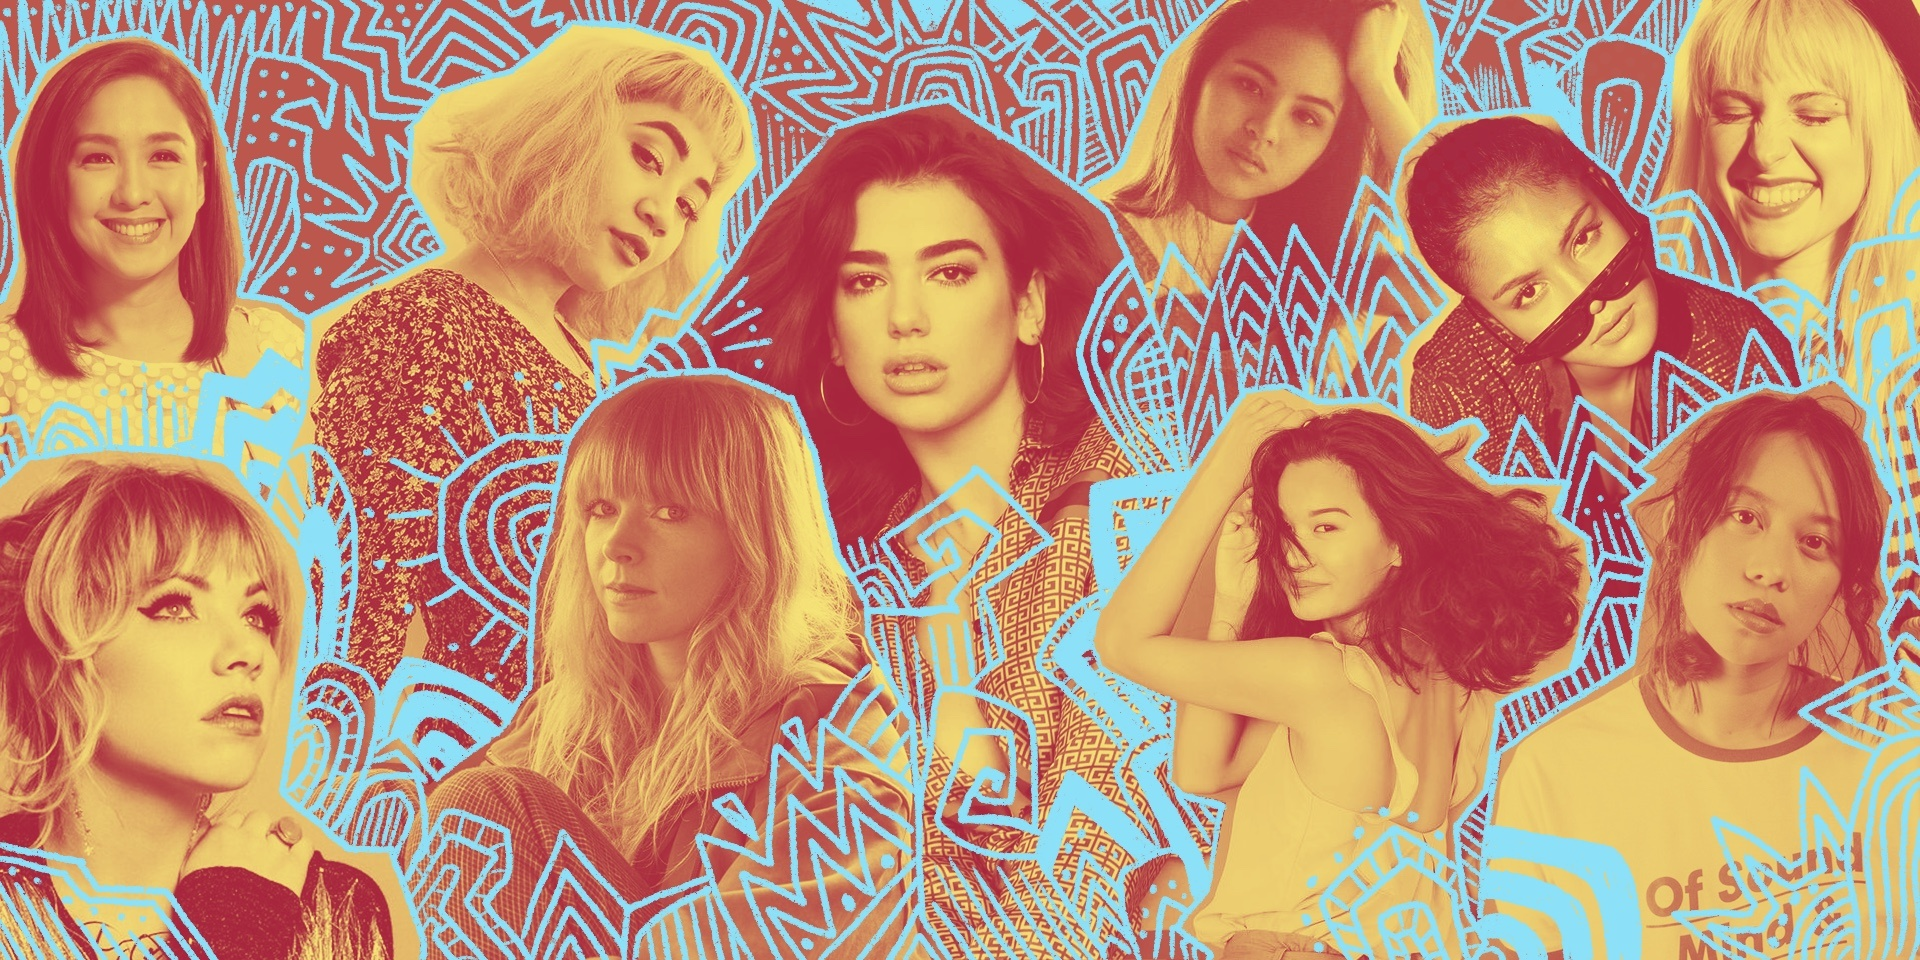 Happy International Women's Day! Here's a playlist to celebrate girl power – listen